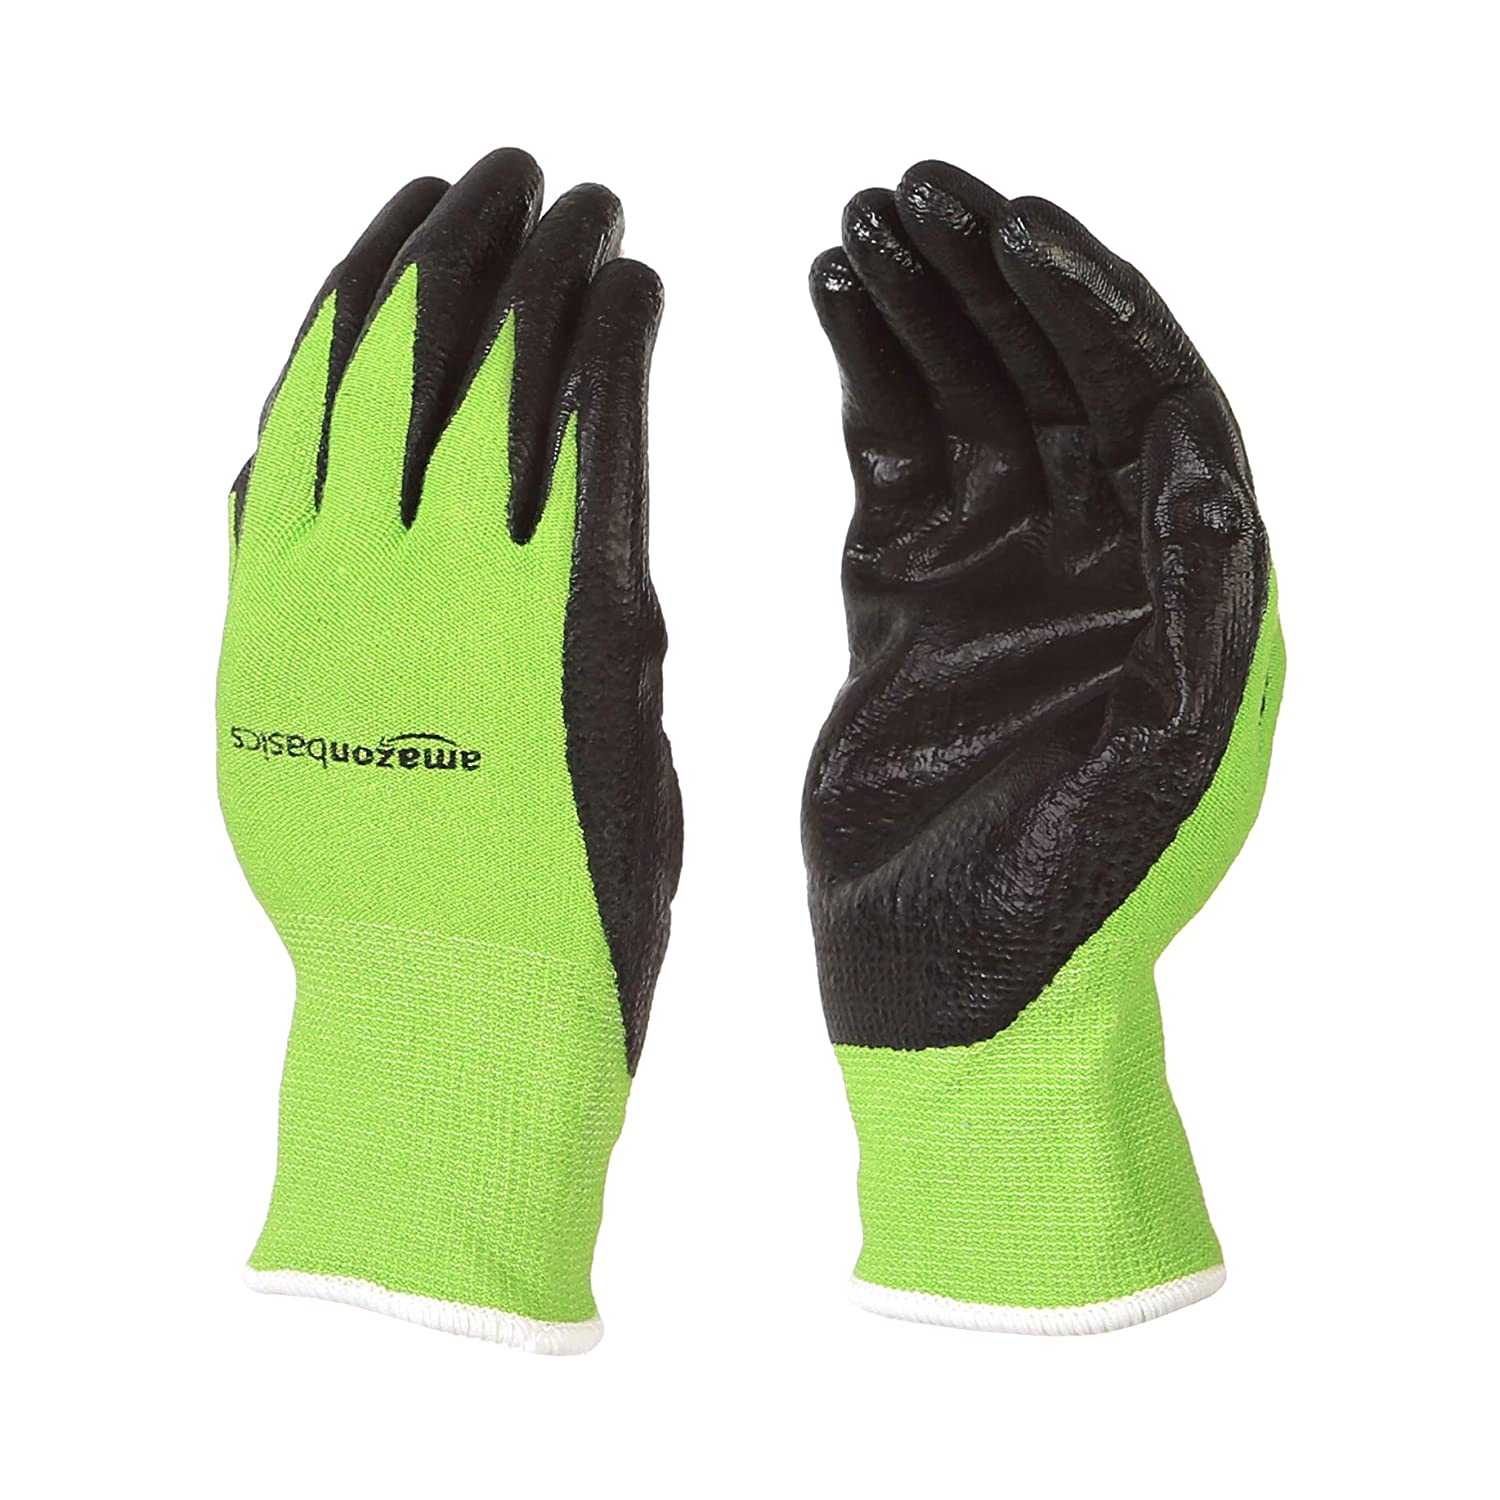 AmazonBasics Bamboo Working Gloves with Touchscreen, Green, XS, 5-Pair